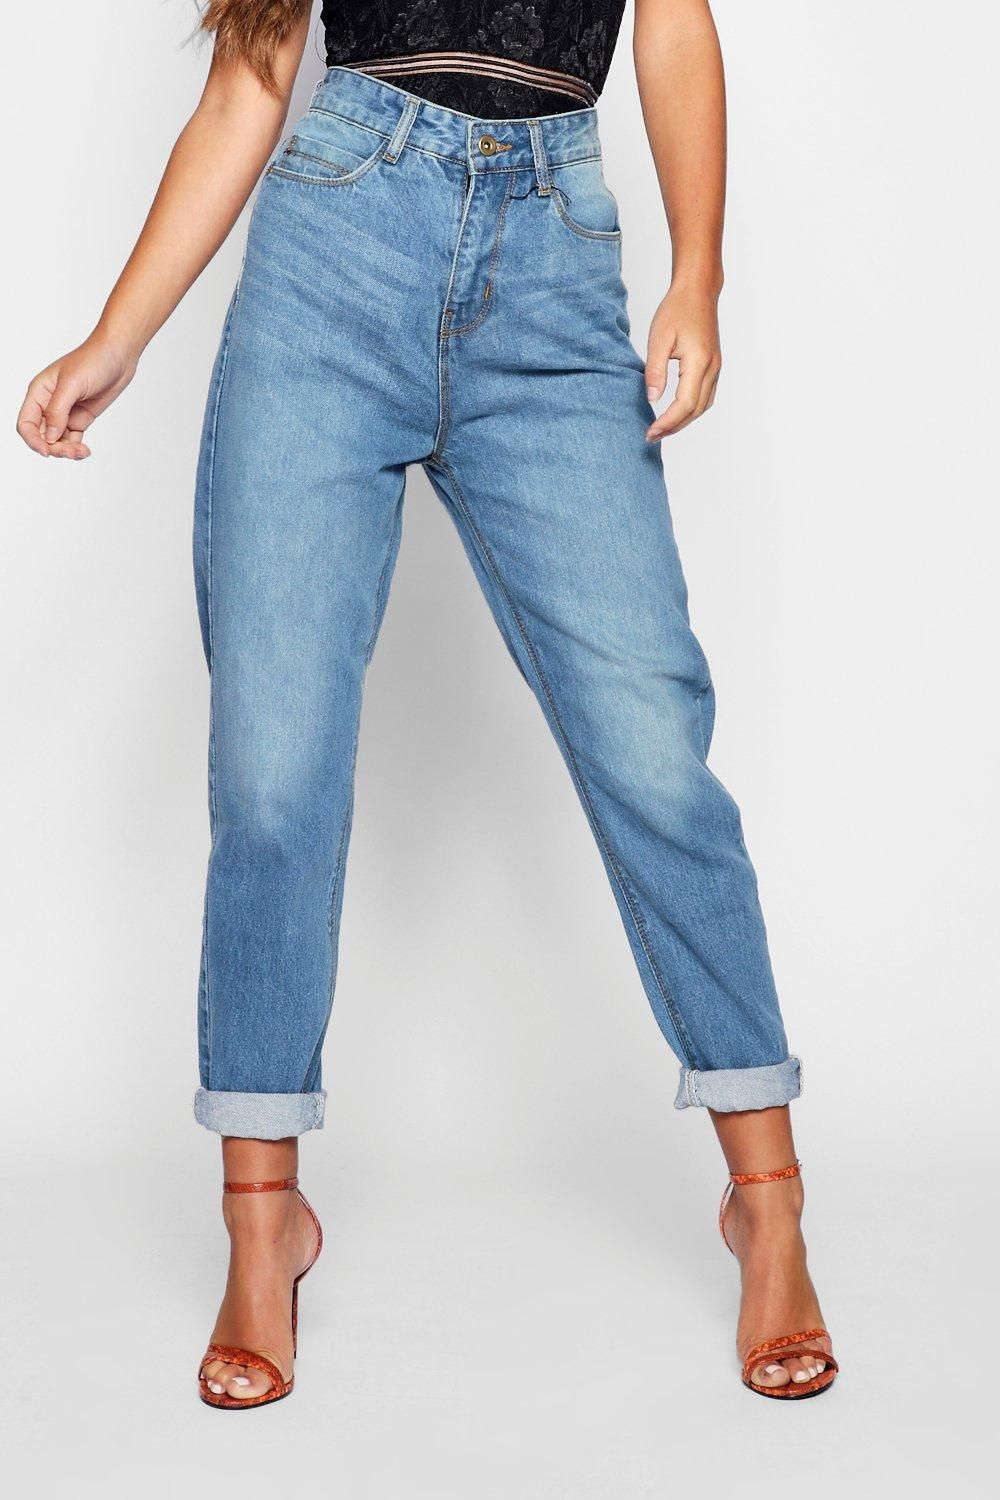 679badce0b72 Click here to find out about the Petite High Rise Mom Jeans from Boohoo,  part of our latest NEW IN collection ready to shop online today!